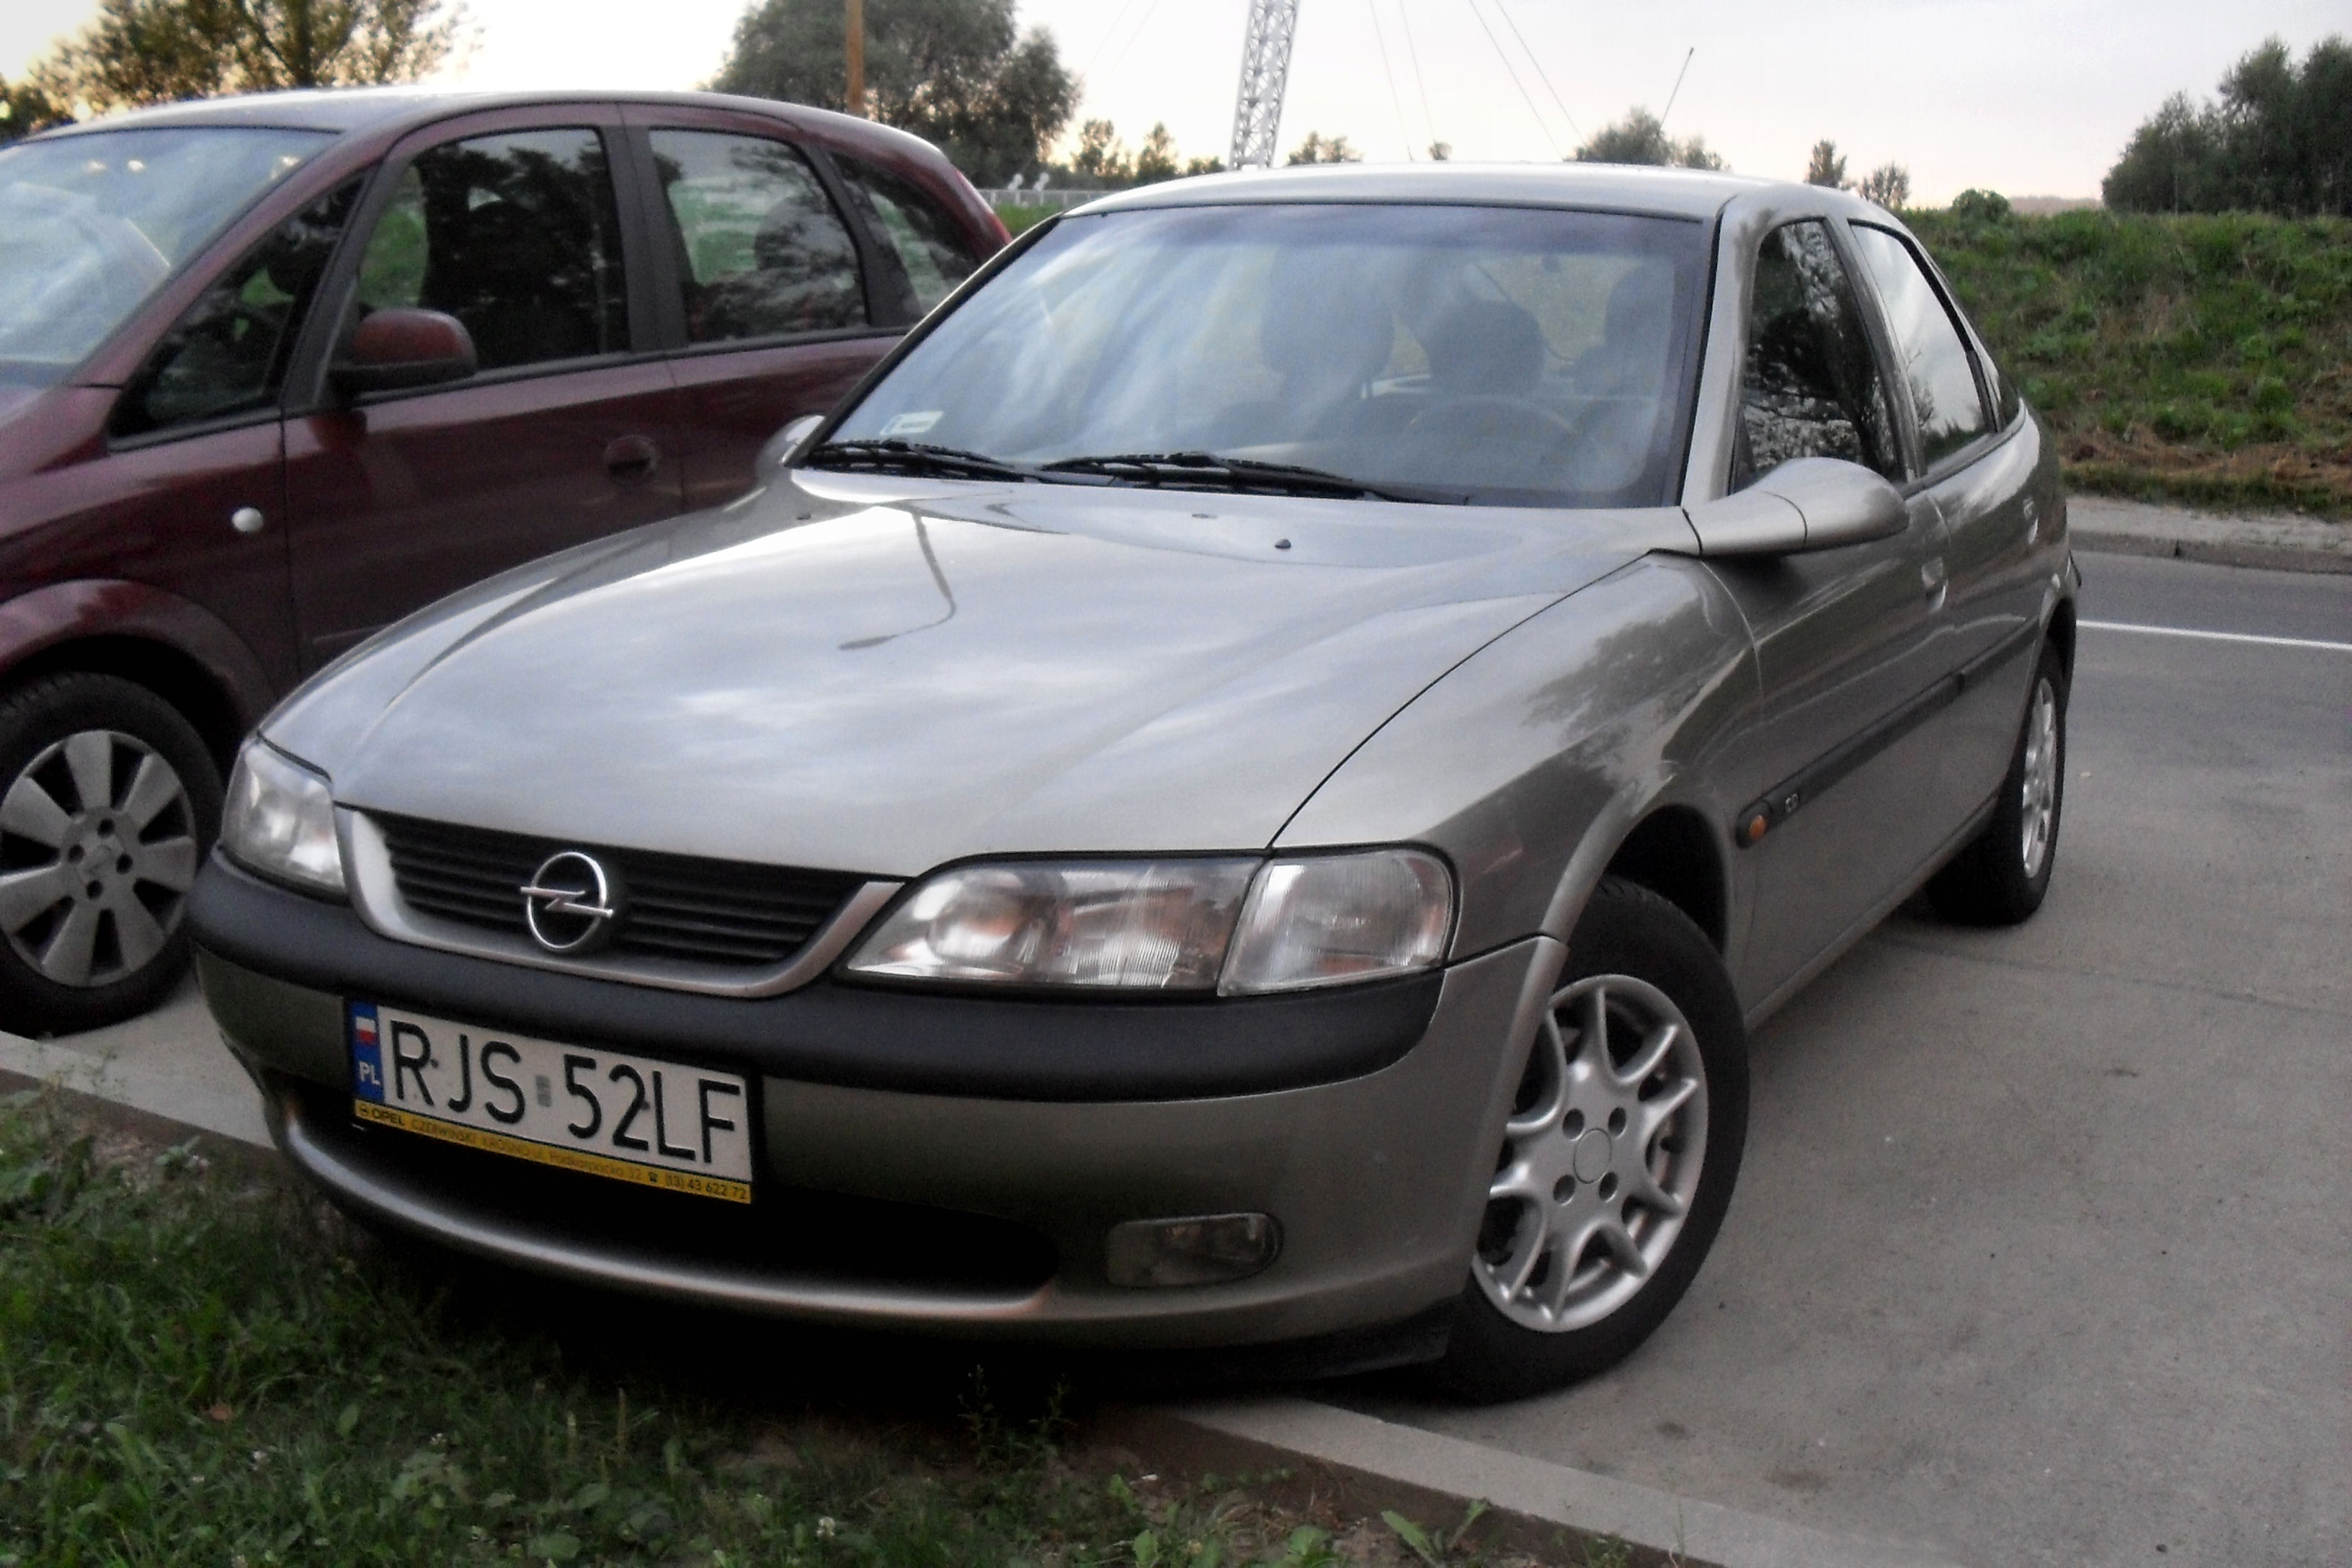 File:Opel vectra b jaslo.JPG - Wikimedia Commons